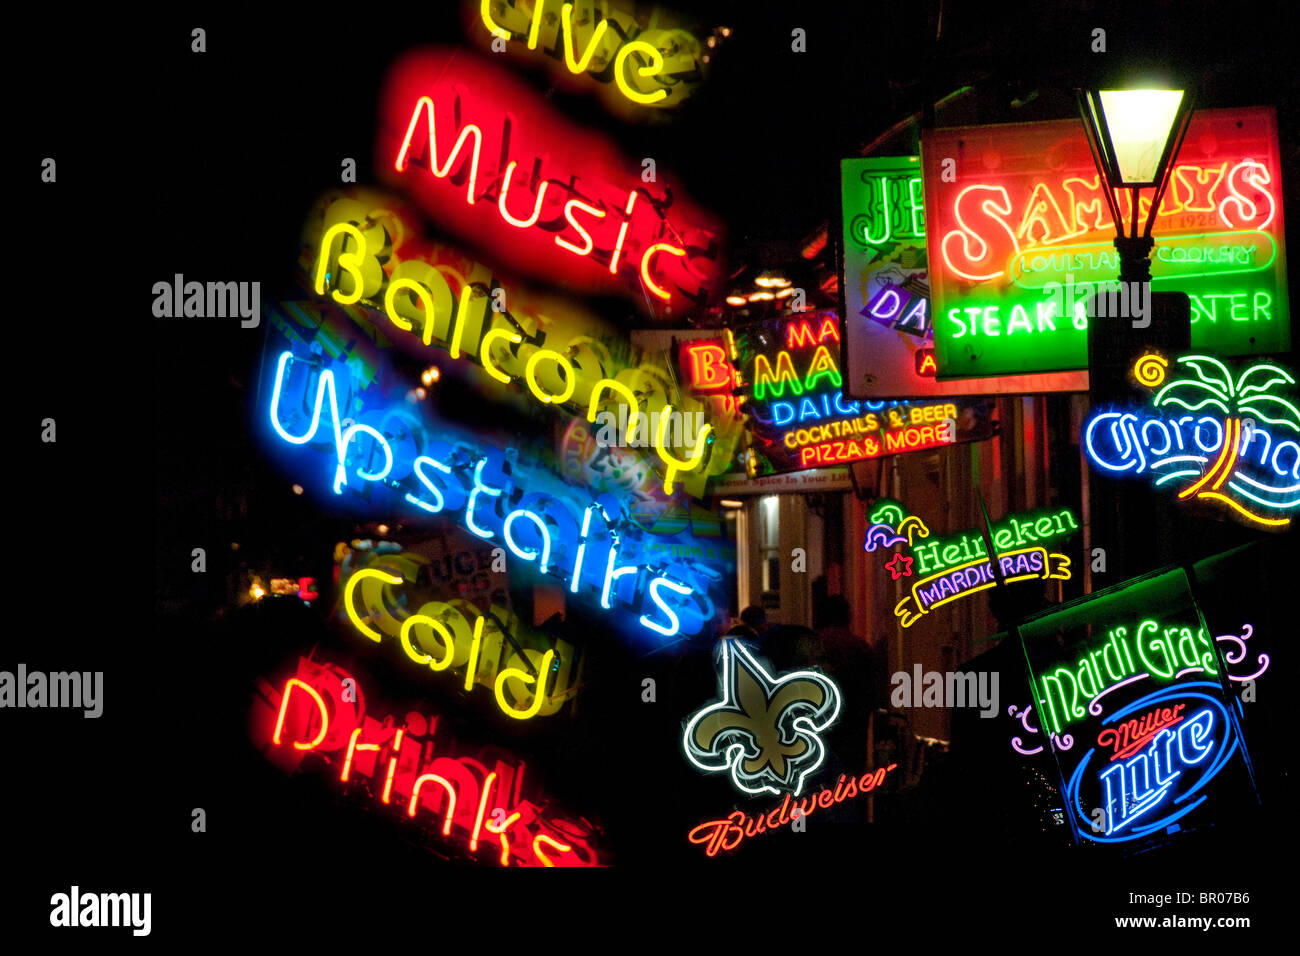 Neon signs on Bourbon Street in The French Quarter, New Orleans, Louisiana, USA - Stock Image